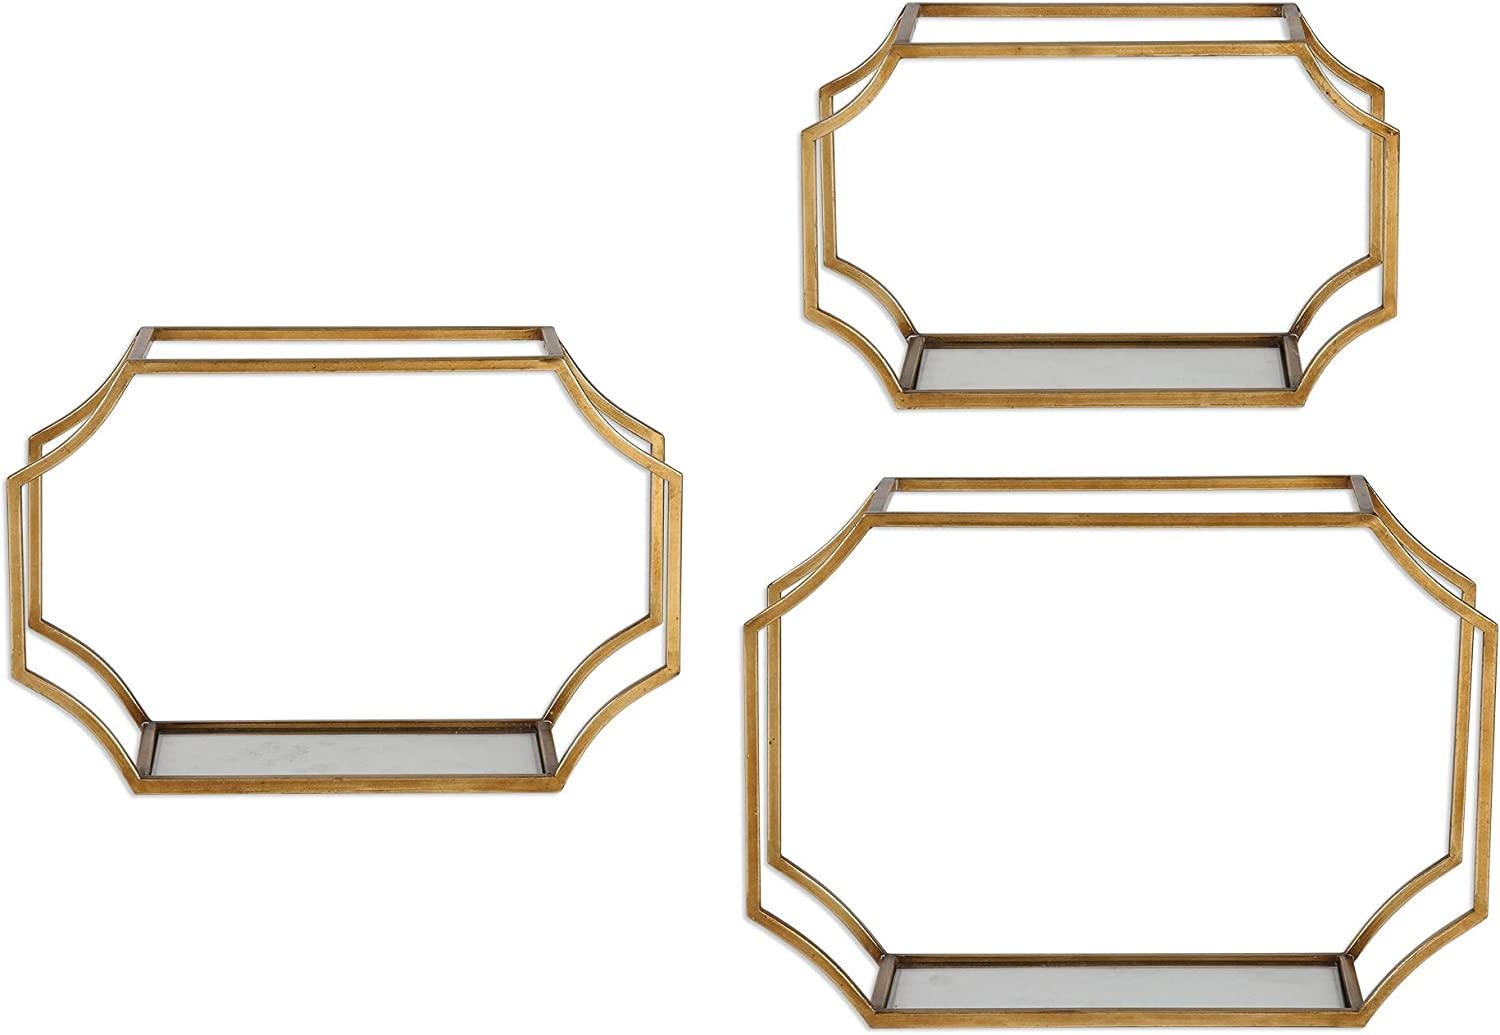 MY SWANKY HOME Open Gold Metal Glass Wall Shelf Set 3| Hanging Shelves Frames Contemporary Sculpted 71Ty8Ine19LSL1500_